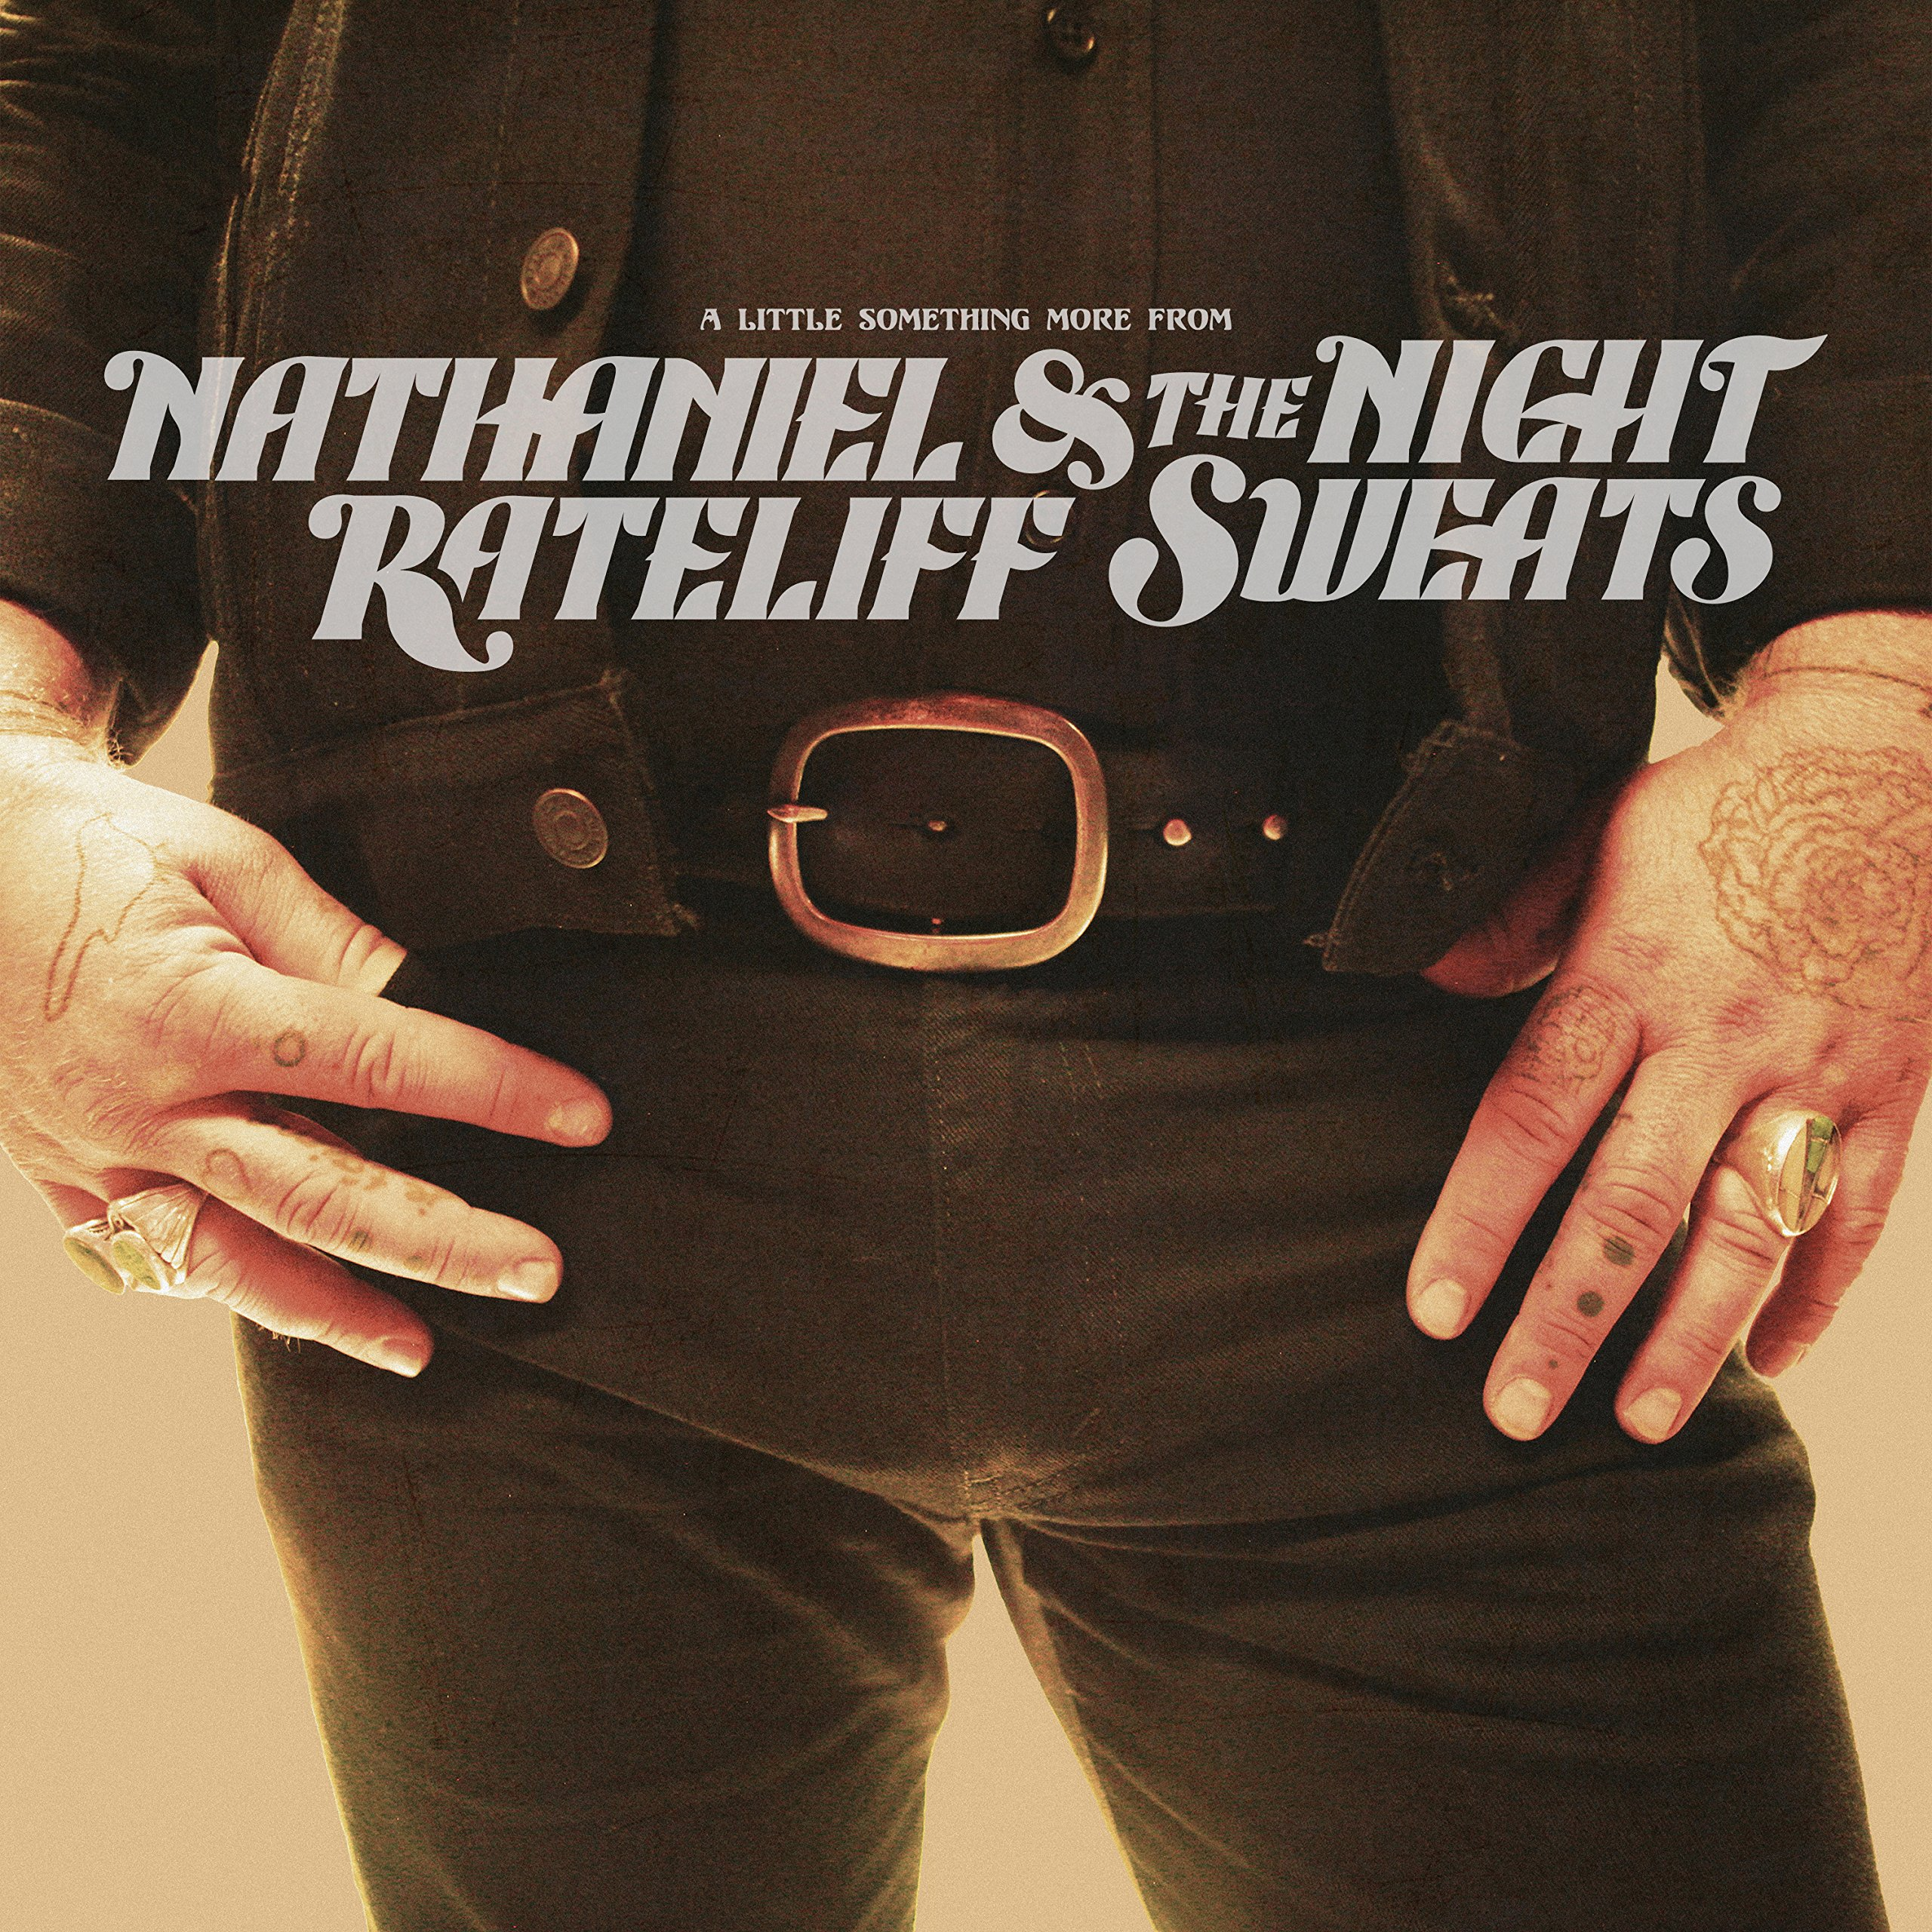 Cassette : Nathaniel Rateliff & the Night Sweats - A Little Something More From (Cassette)